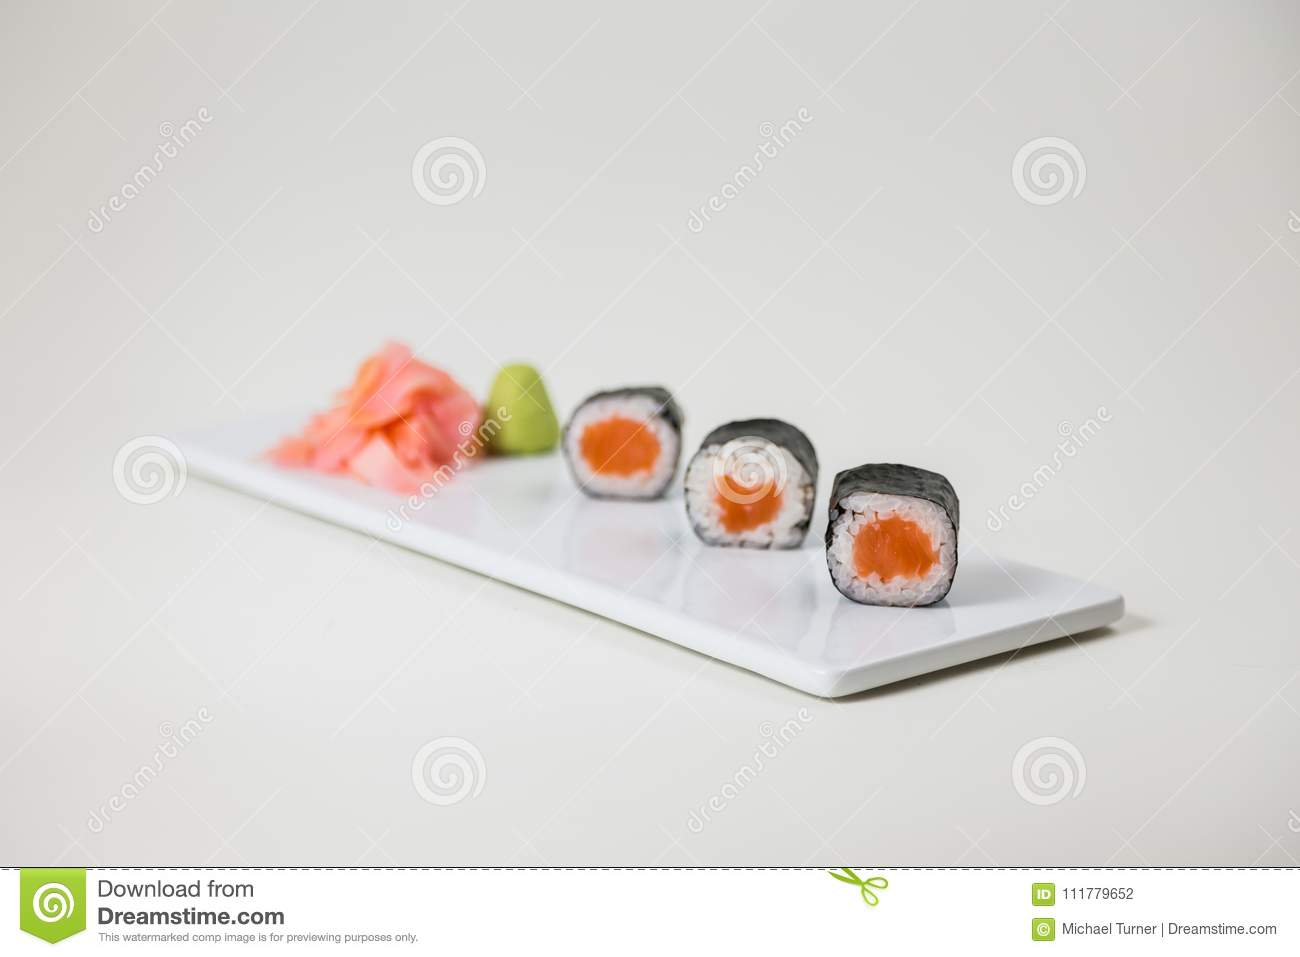 Sushi on a white plate on a white background isolated